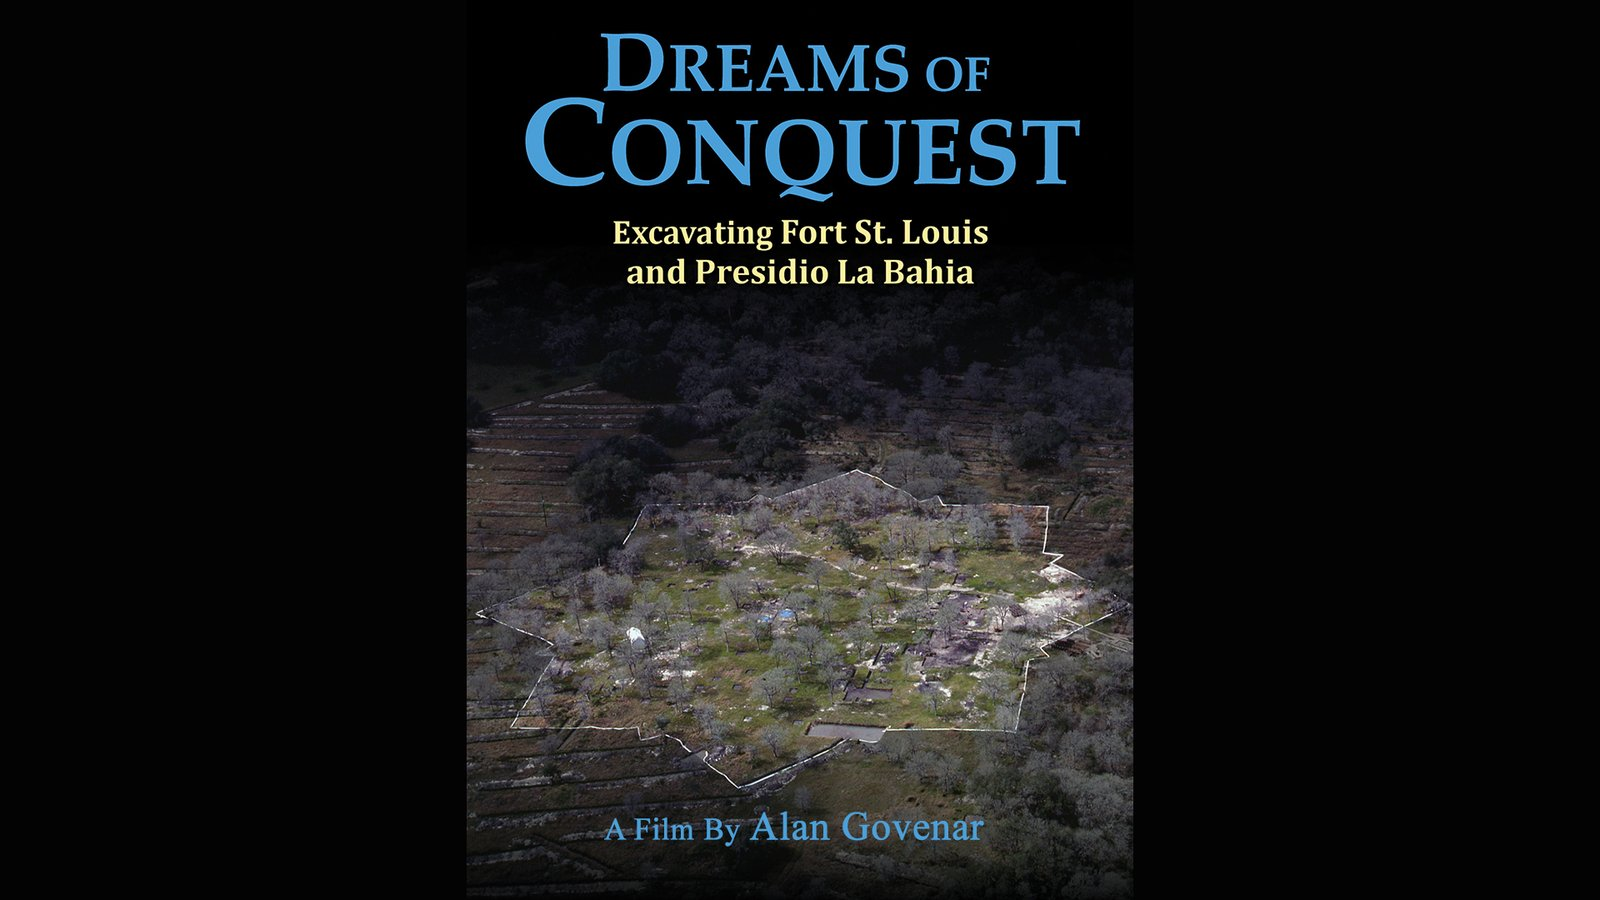 Dreams of Conquest - Excavating Fort St. Lewis in Mexico